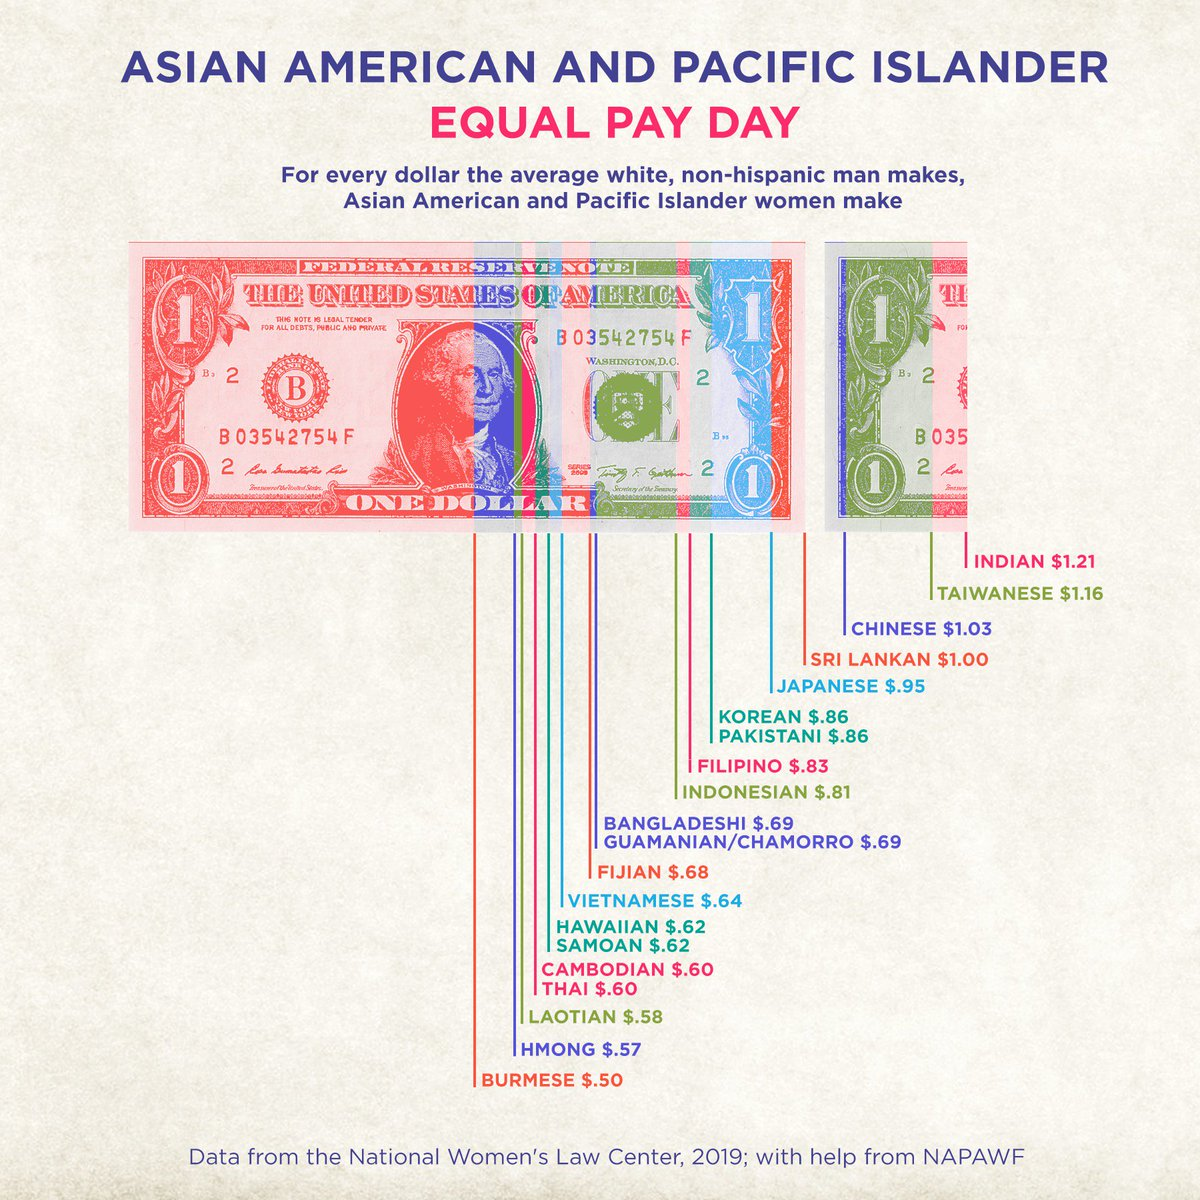 In the fight for equity, we must ALL demand equal pay for our Asian American, Native Hawaiian and Pacific Islander sisters. #AAPIEqualPay